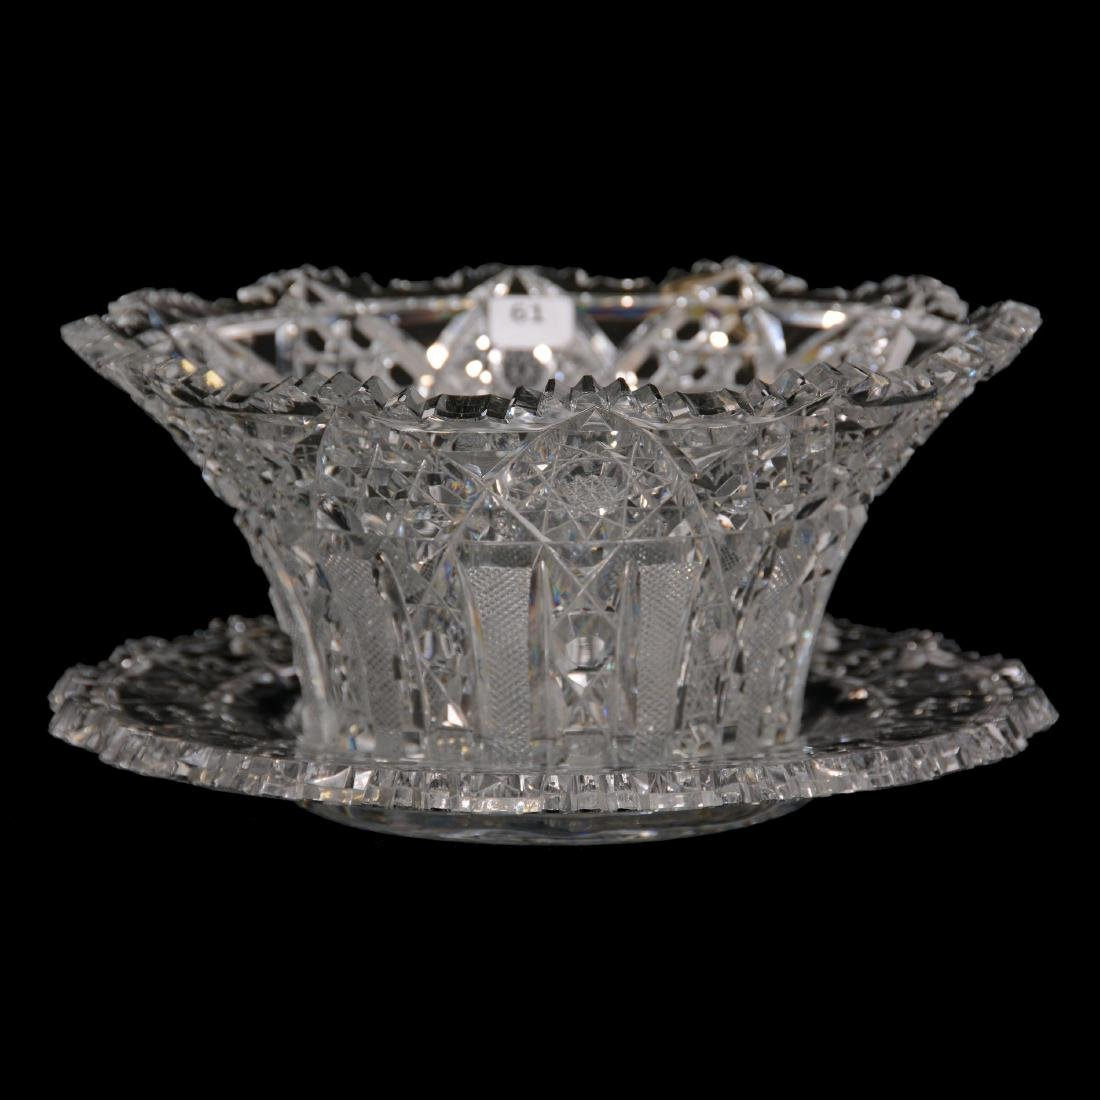 American Brilliant Cut Glass Salad Bowl and Underplate